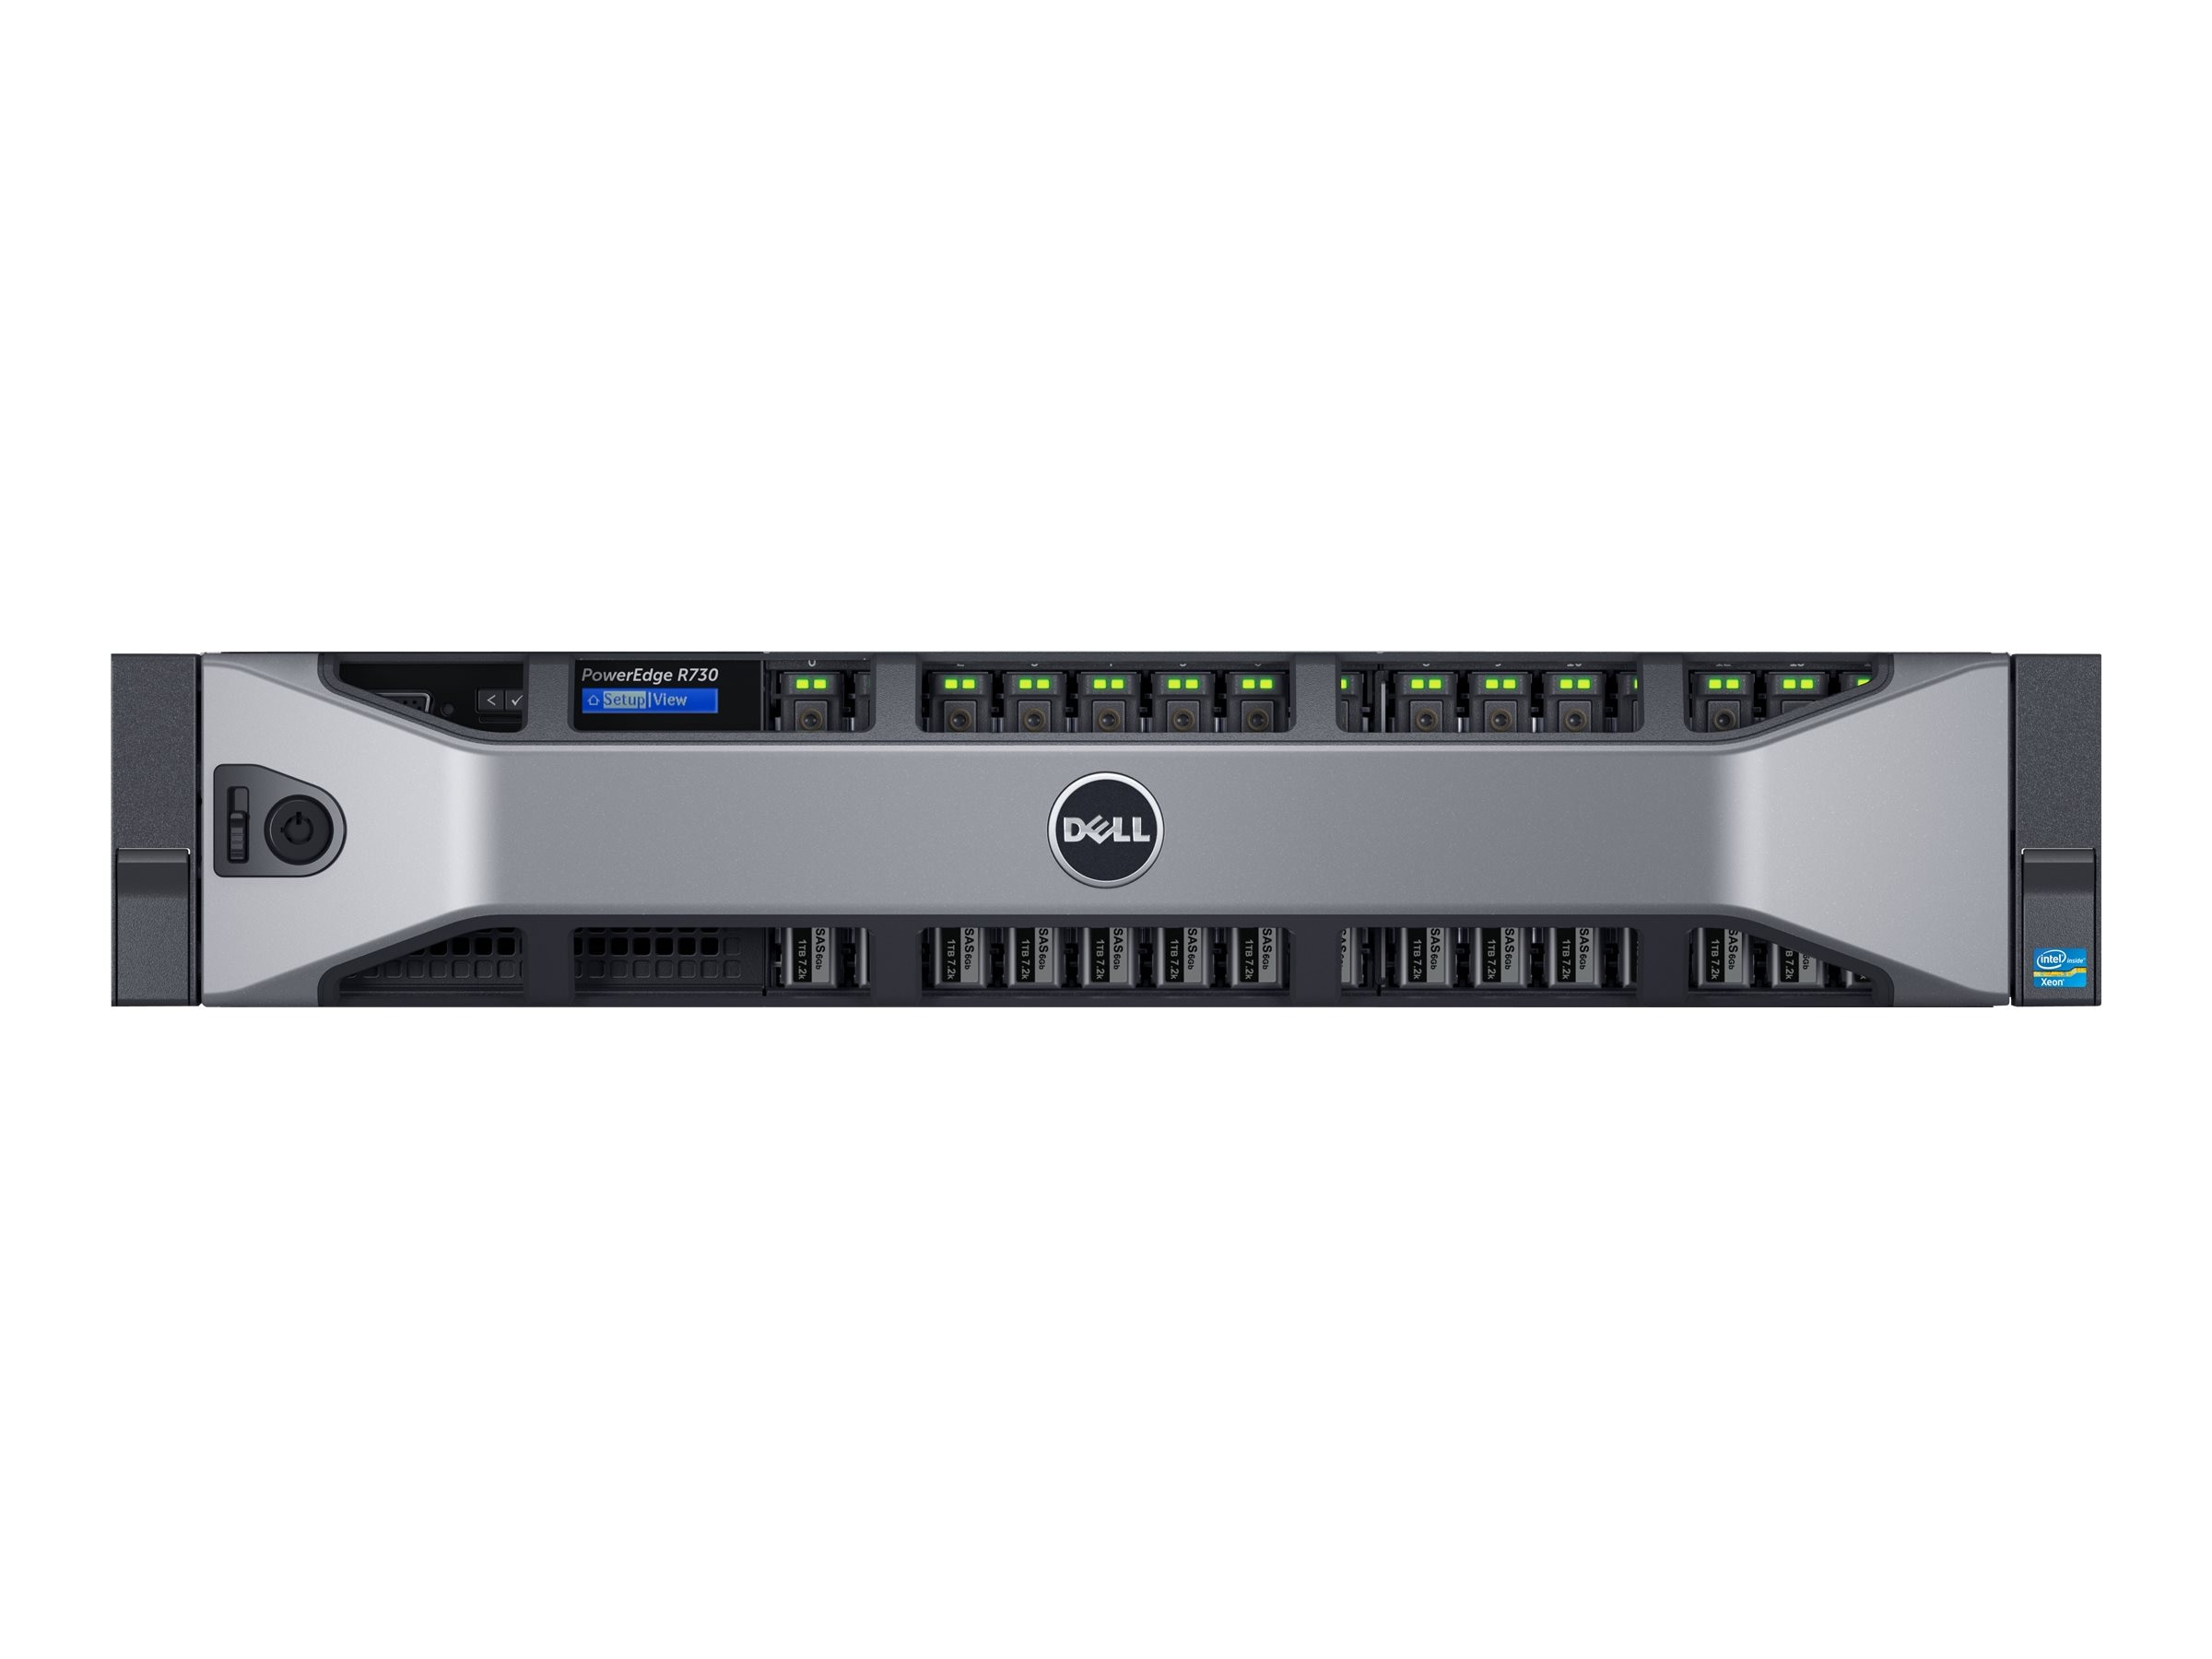 Dell PowerEdge R730 Intel 2GHz Xeon, 463-7664